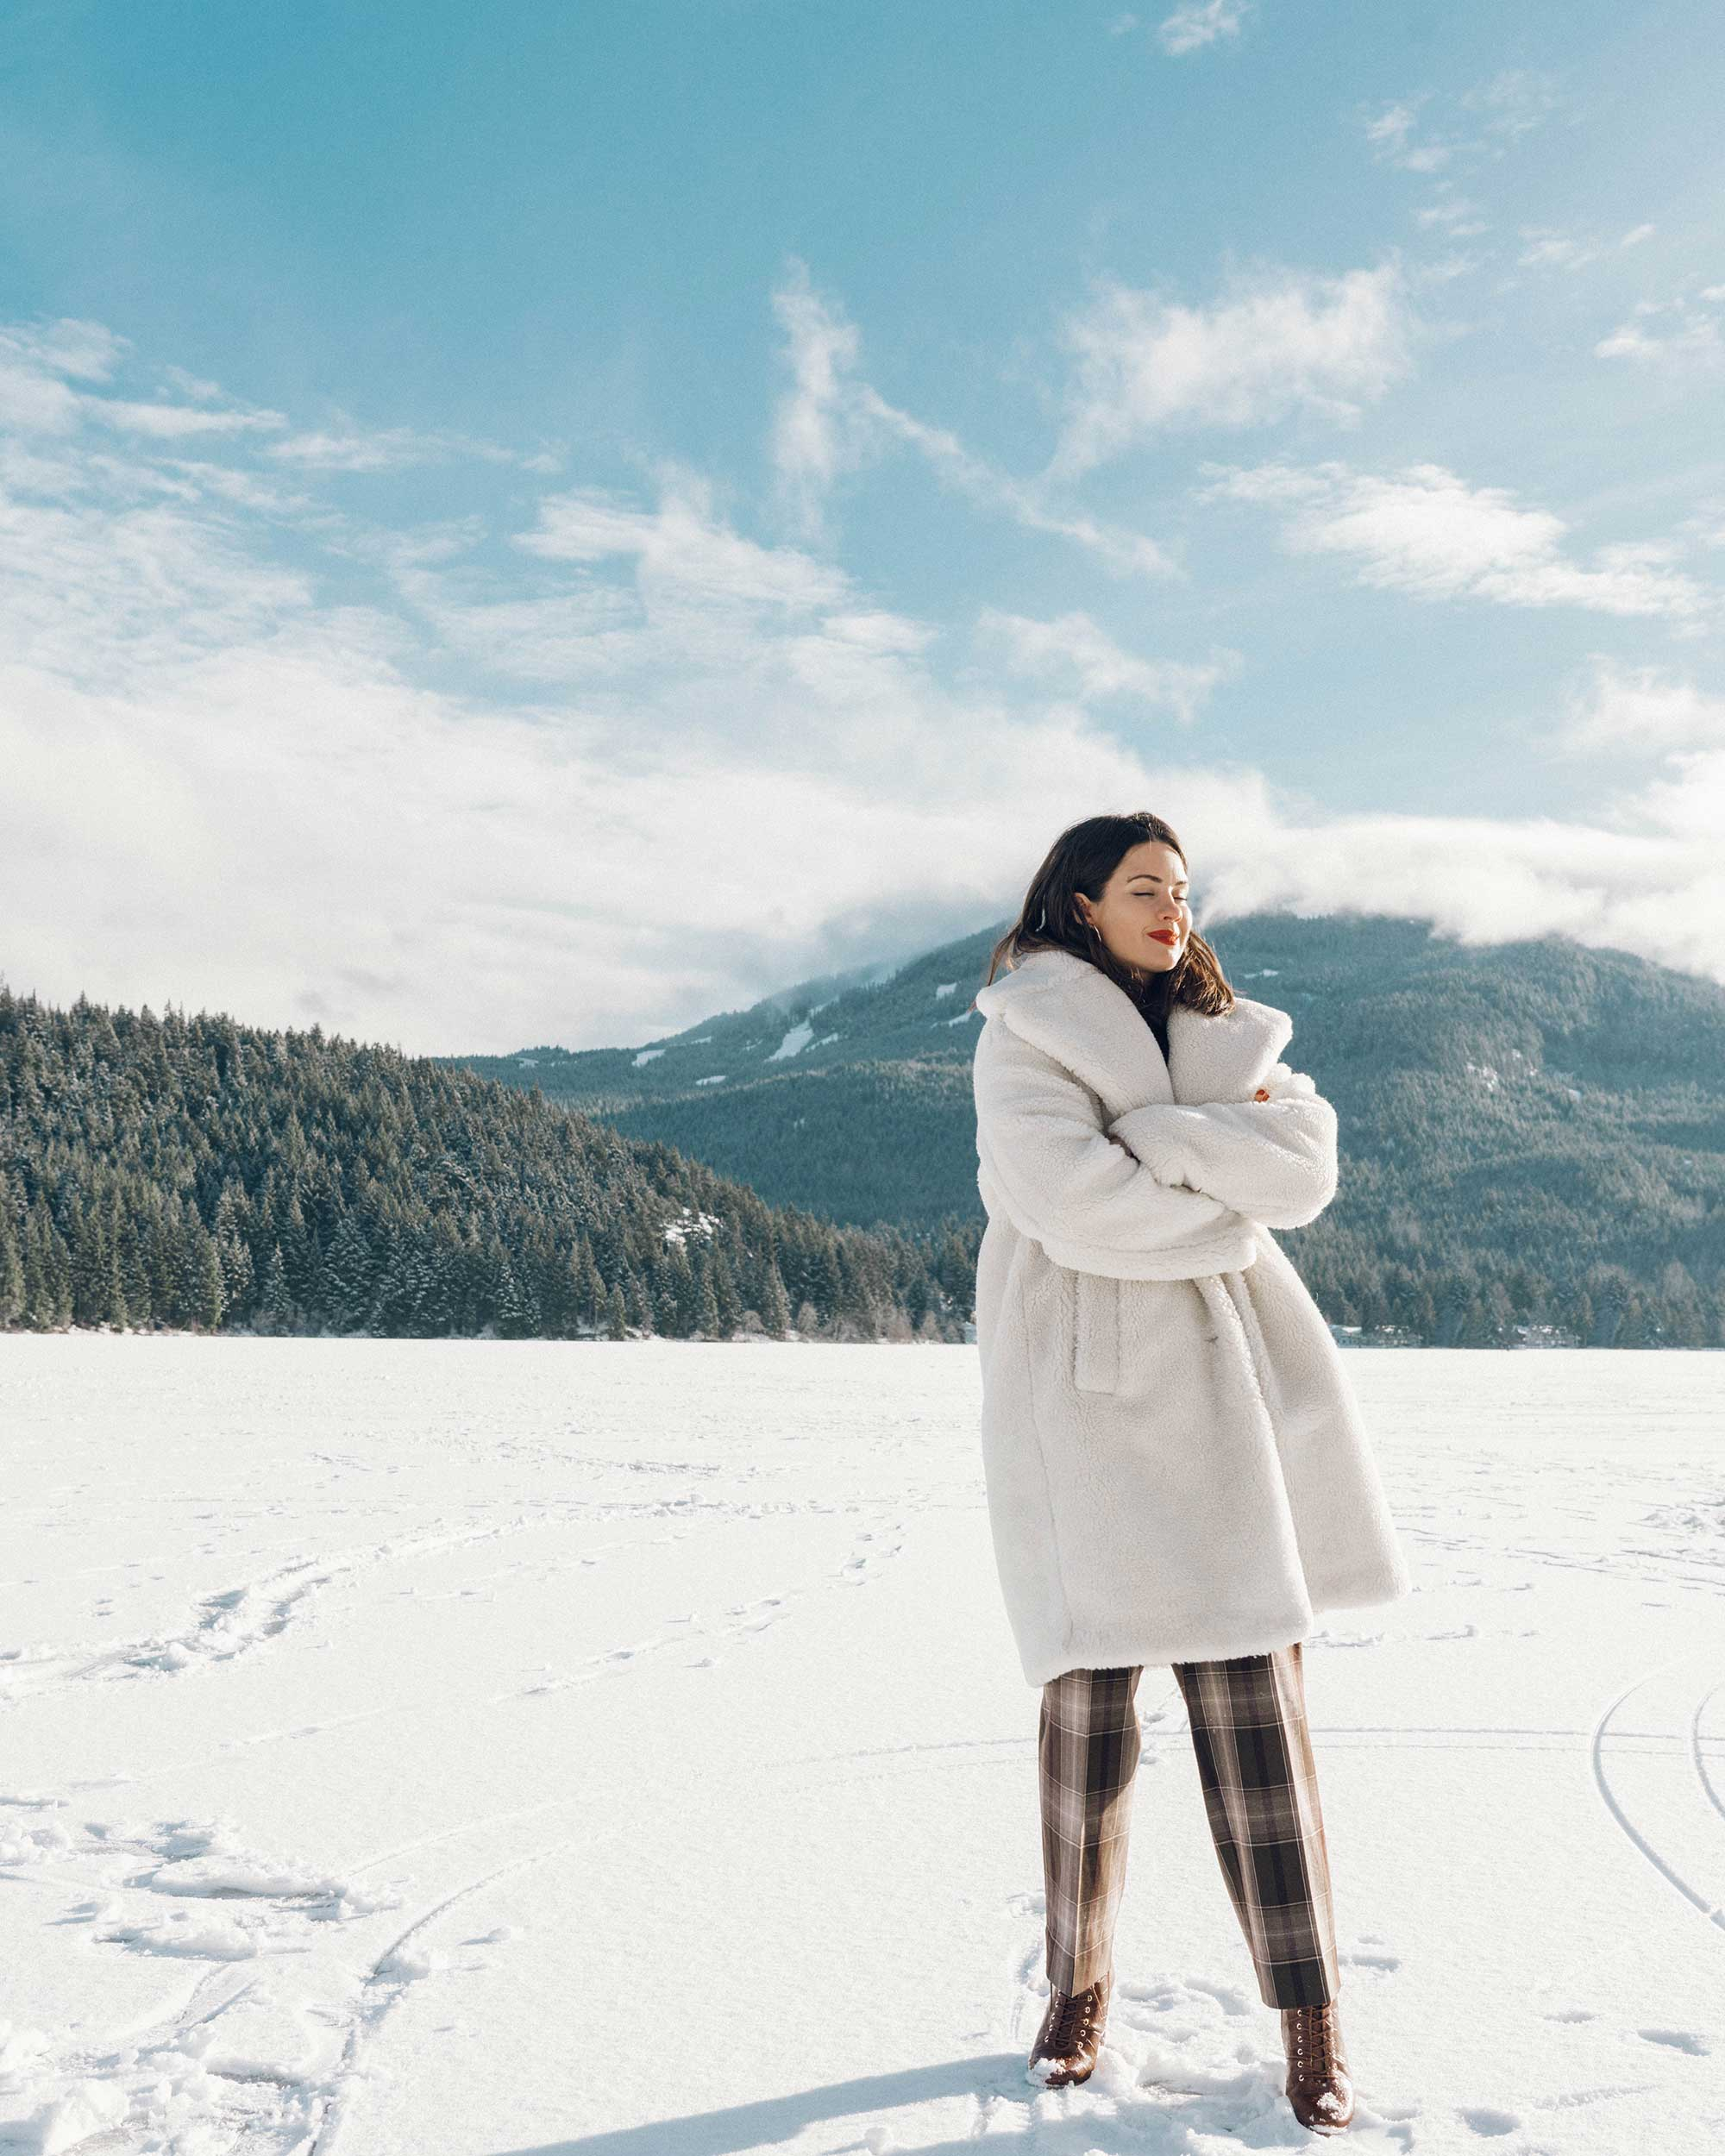 & Other Stories Tailored Brown Plaid Pants with pleats, white Faux Shearling Coat,  winter snow outfit, whistler canada1.jpg